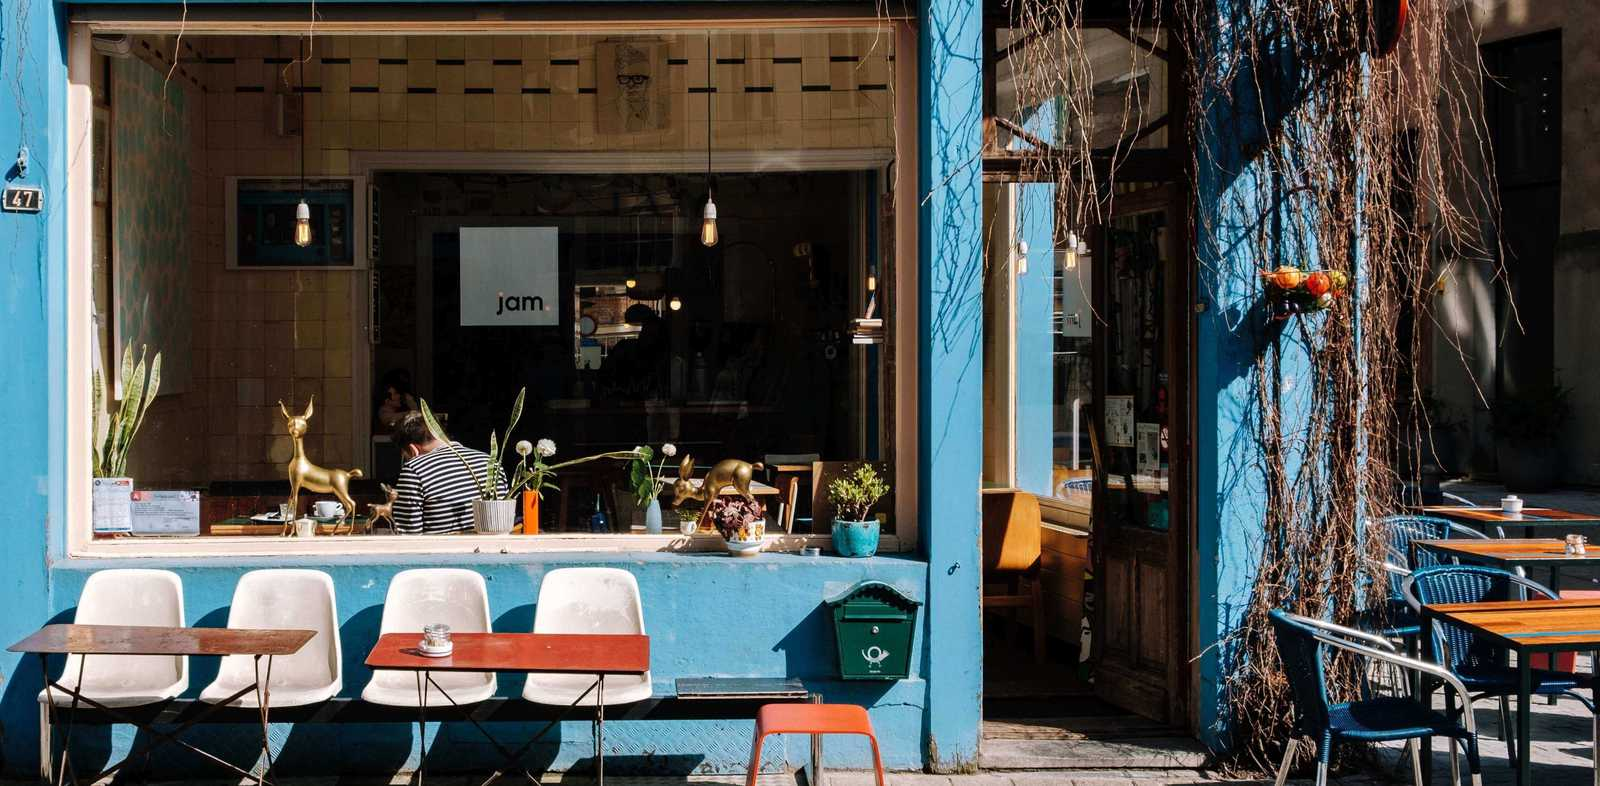 The outside of a cafe with chairs and tables - Blog image for top commercial bean to cup coffee machine of 2019 blog post